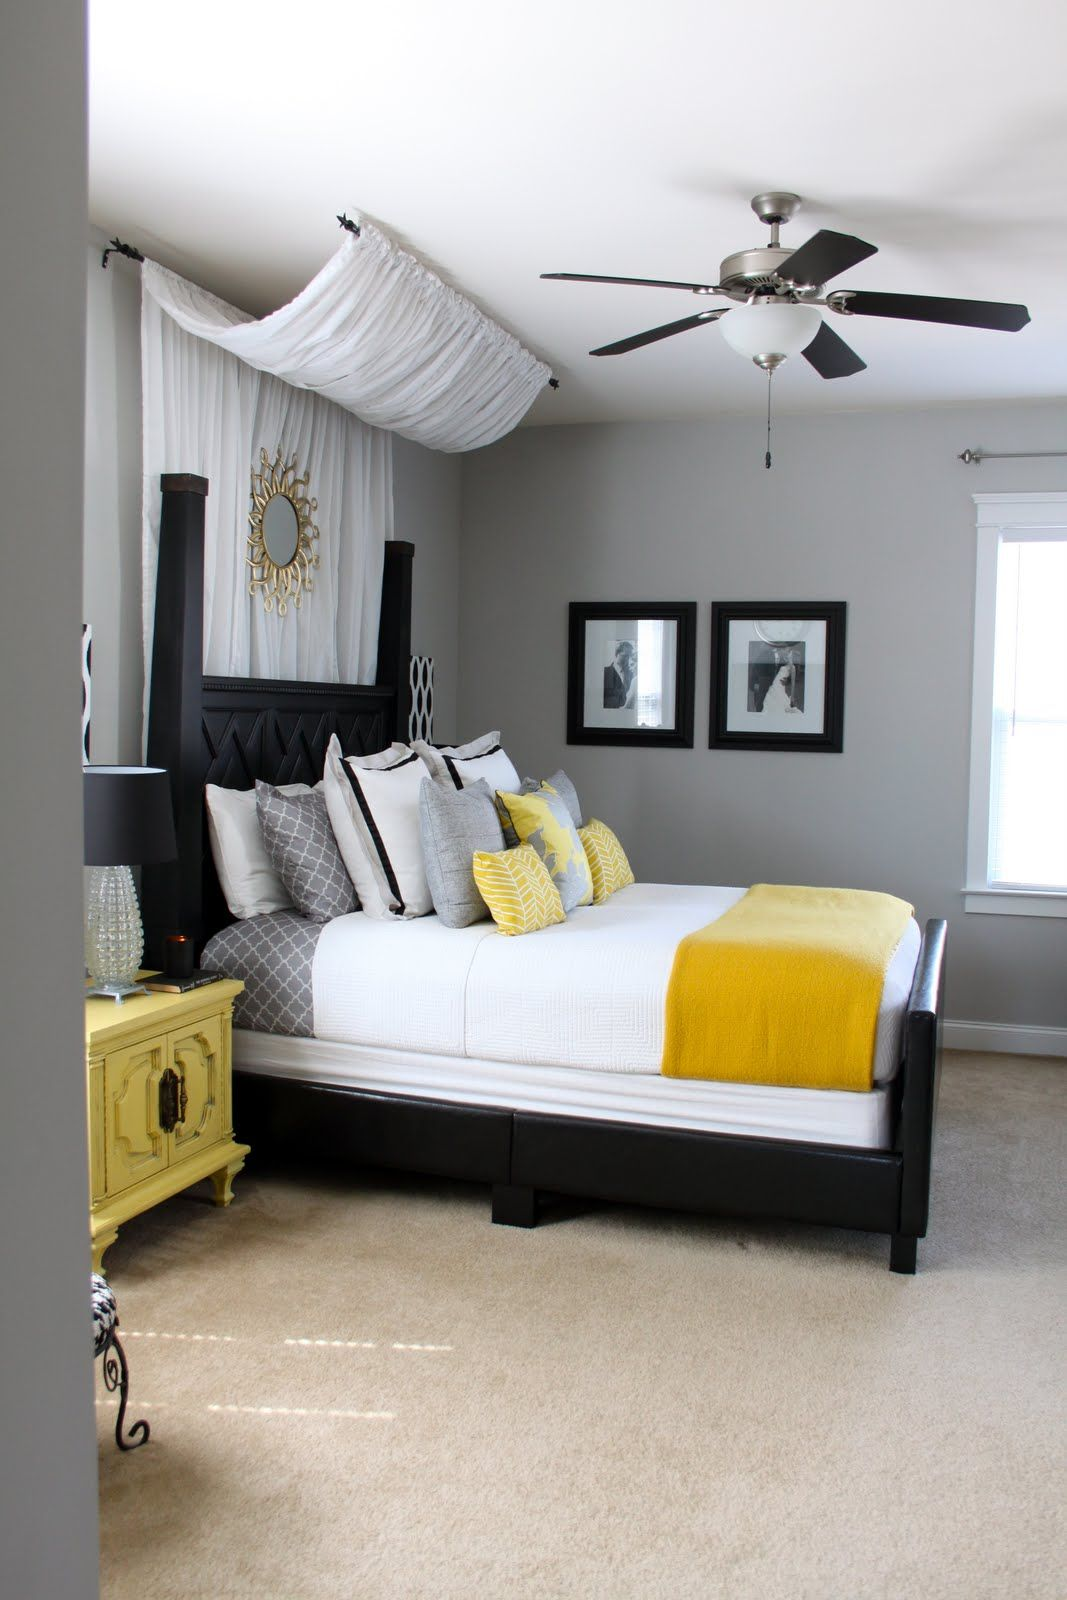 Color Scheme For Master Bedroom At The Lake House. Already Have Black  Curtains And Linen Headboard.